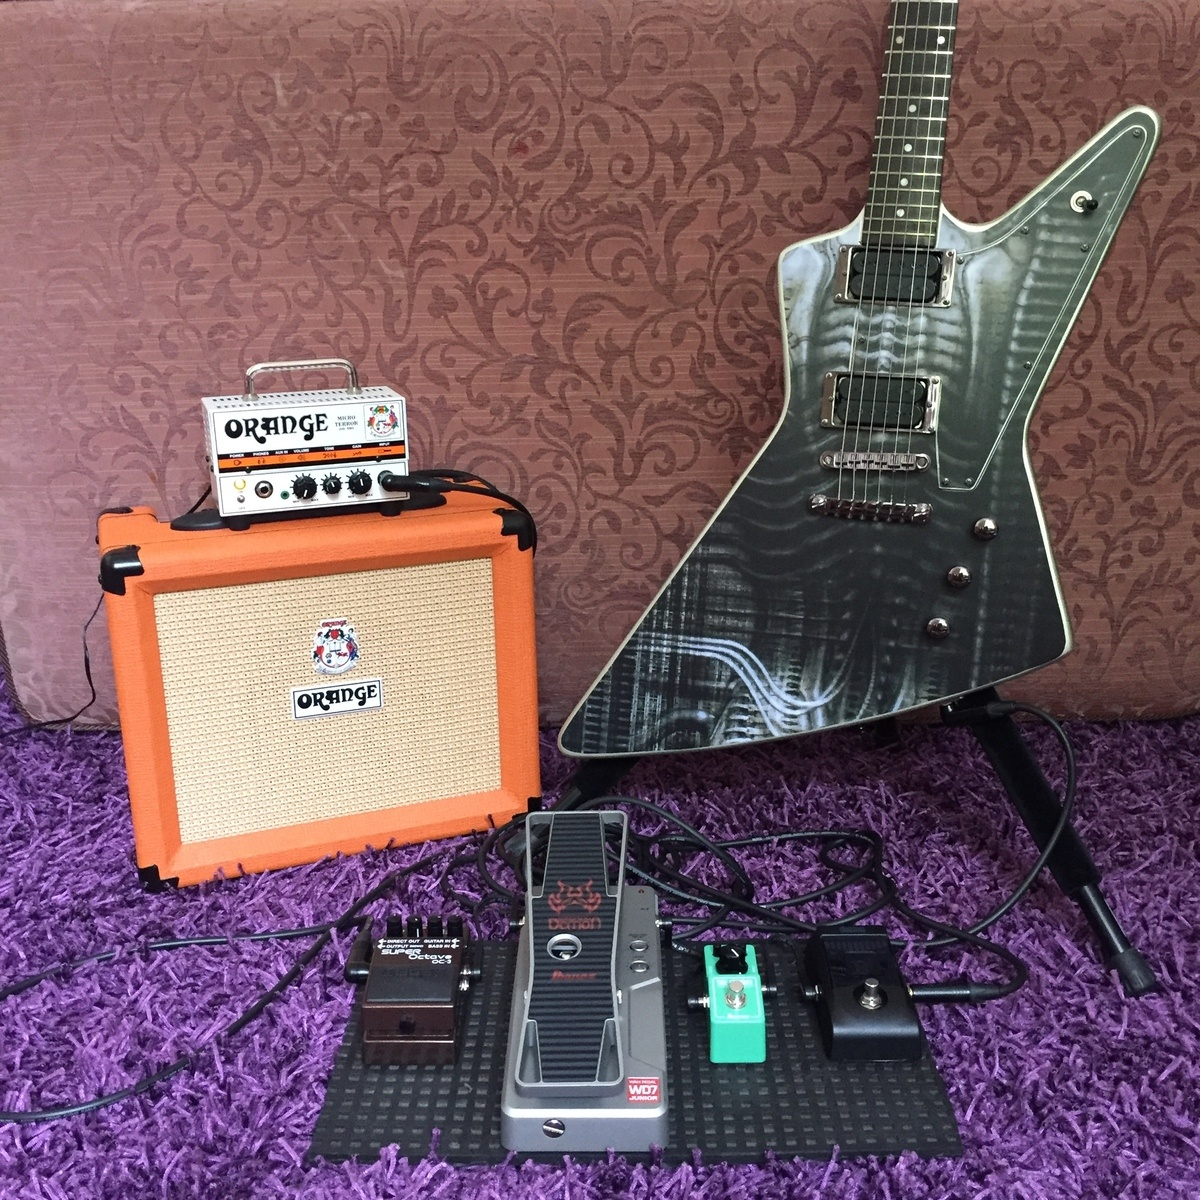 chromaticism's music gear photo containing Boss OC-3 Super Octave, Korg Pitchblack Chromatic Pedal Tuner, Orange Micro Terror, Ibanez Tube Screamer Mini, Orange Amplifiers Crush 20RT, Ibanez Weeping Demon Junior WD7 Wah Pedal, and Epiphonez Hexplorer Giger Tribute